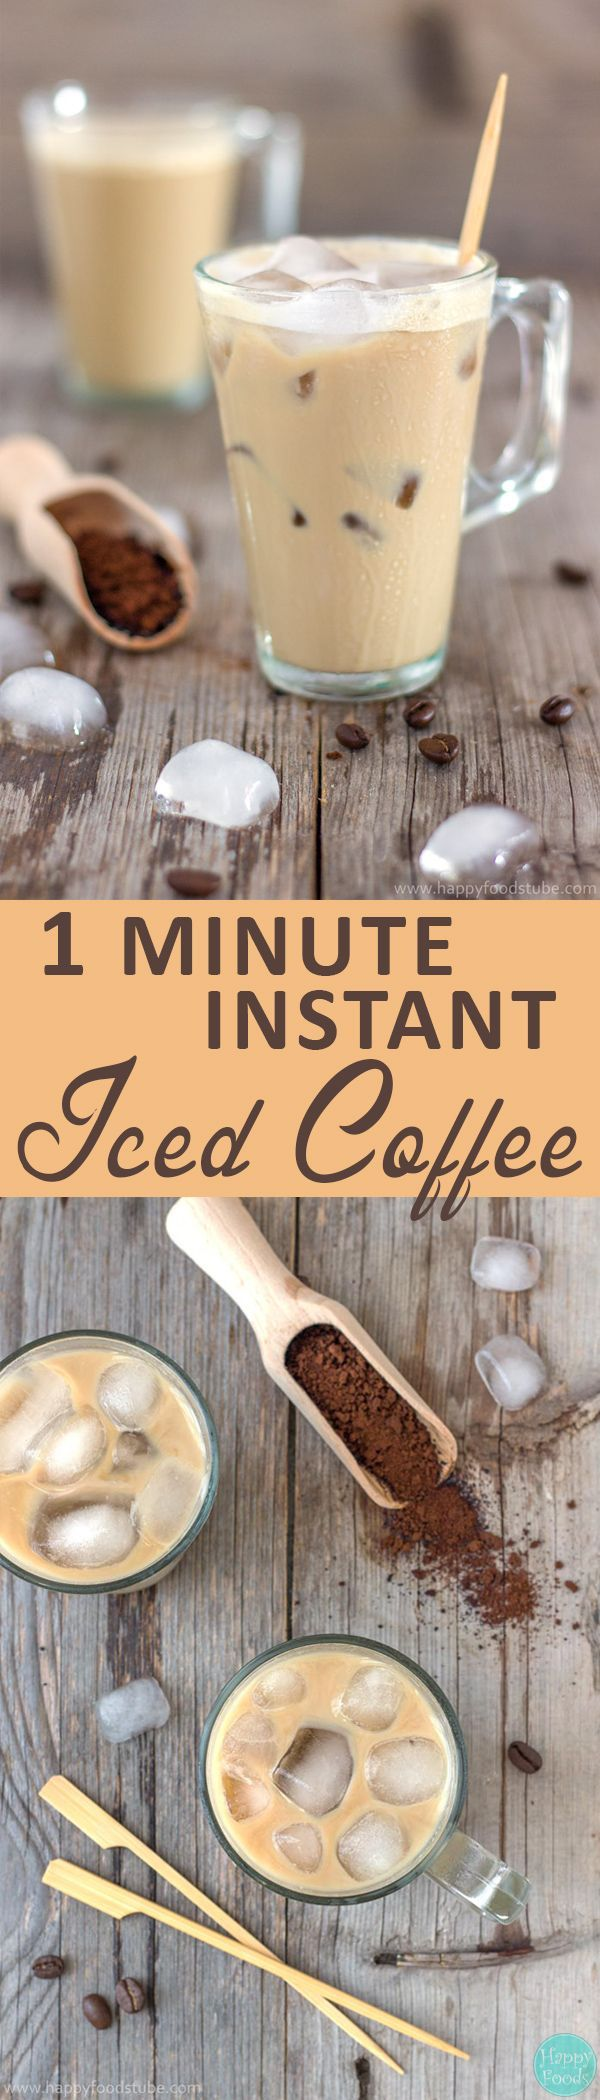 1Minute Instant Iced Coffee Recipe Coffee recipes